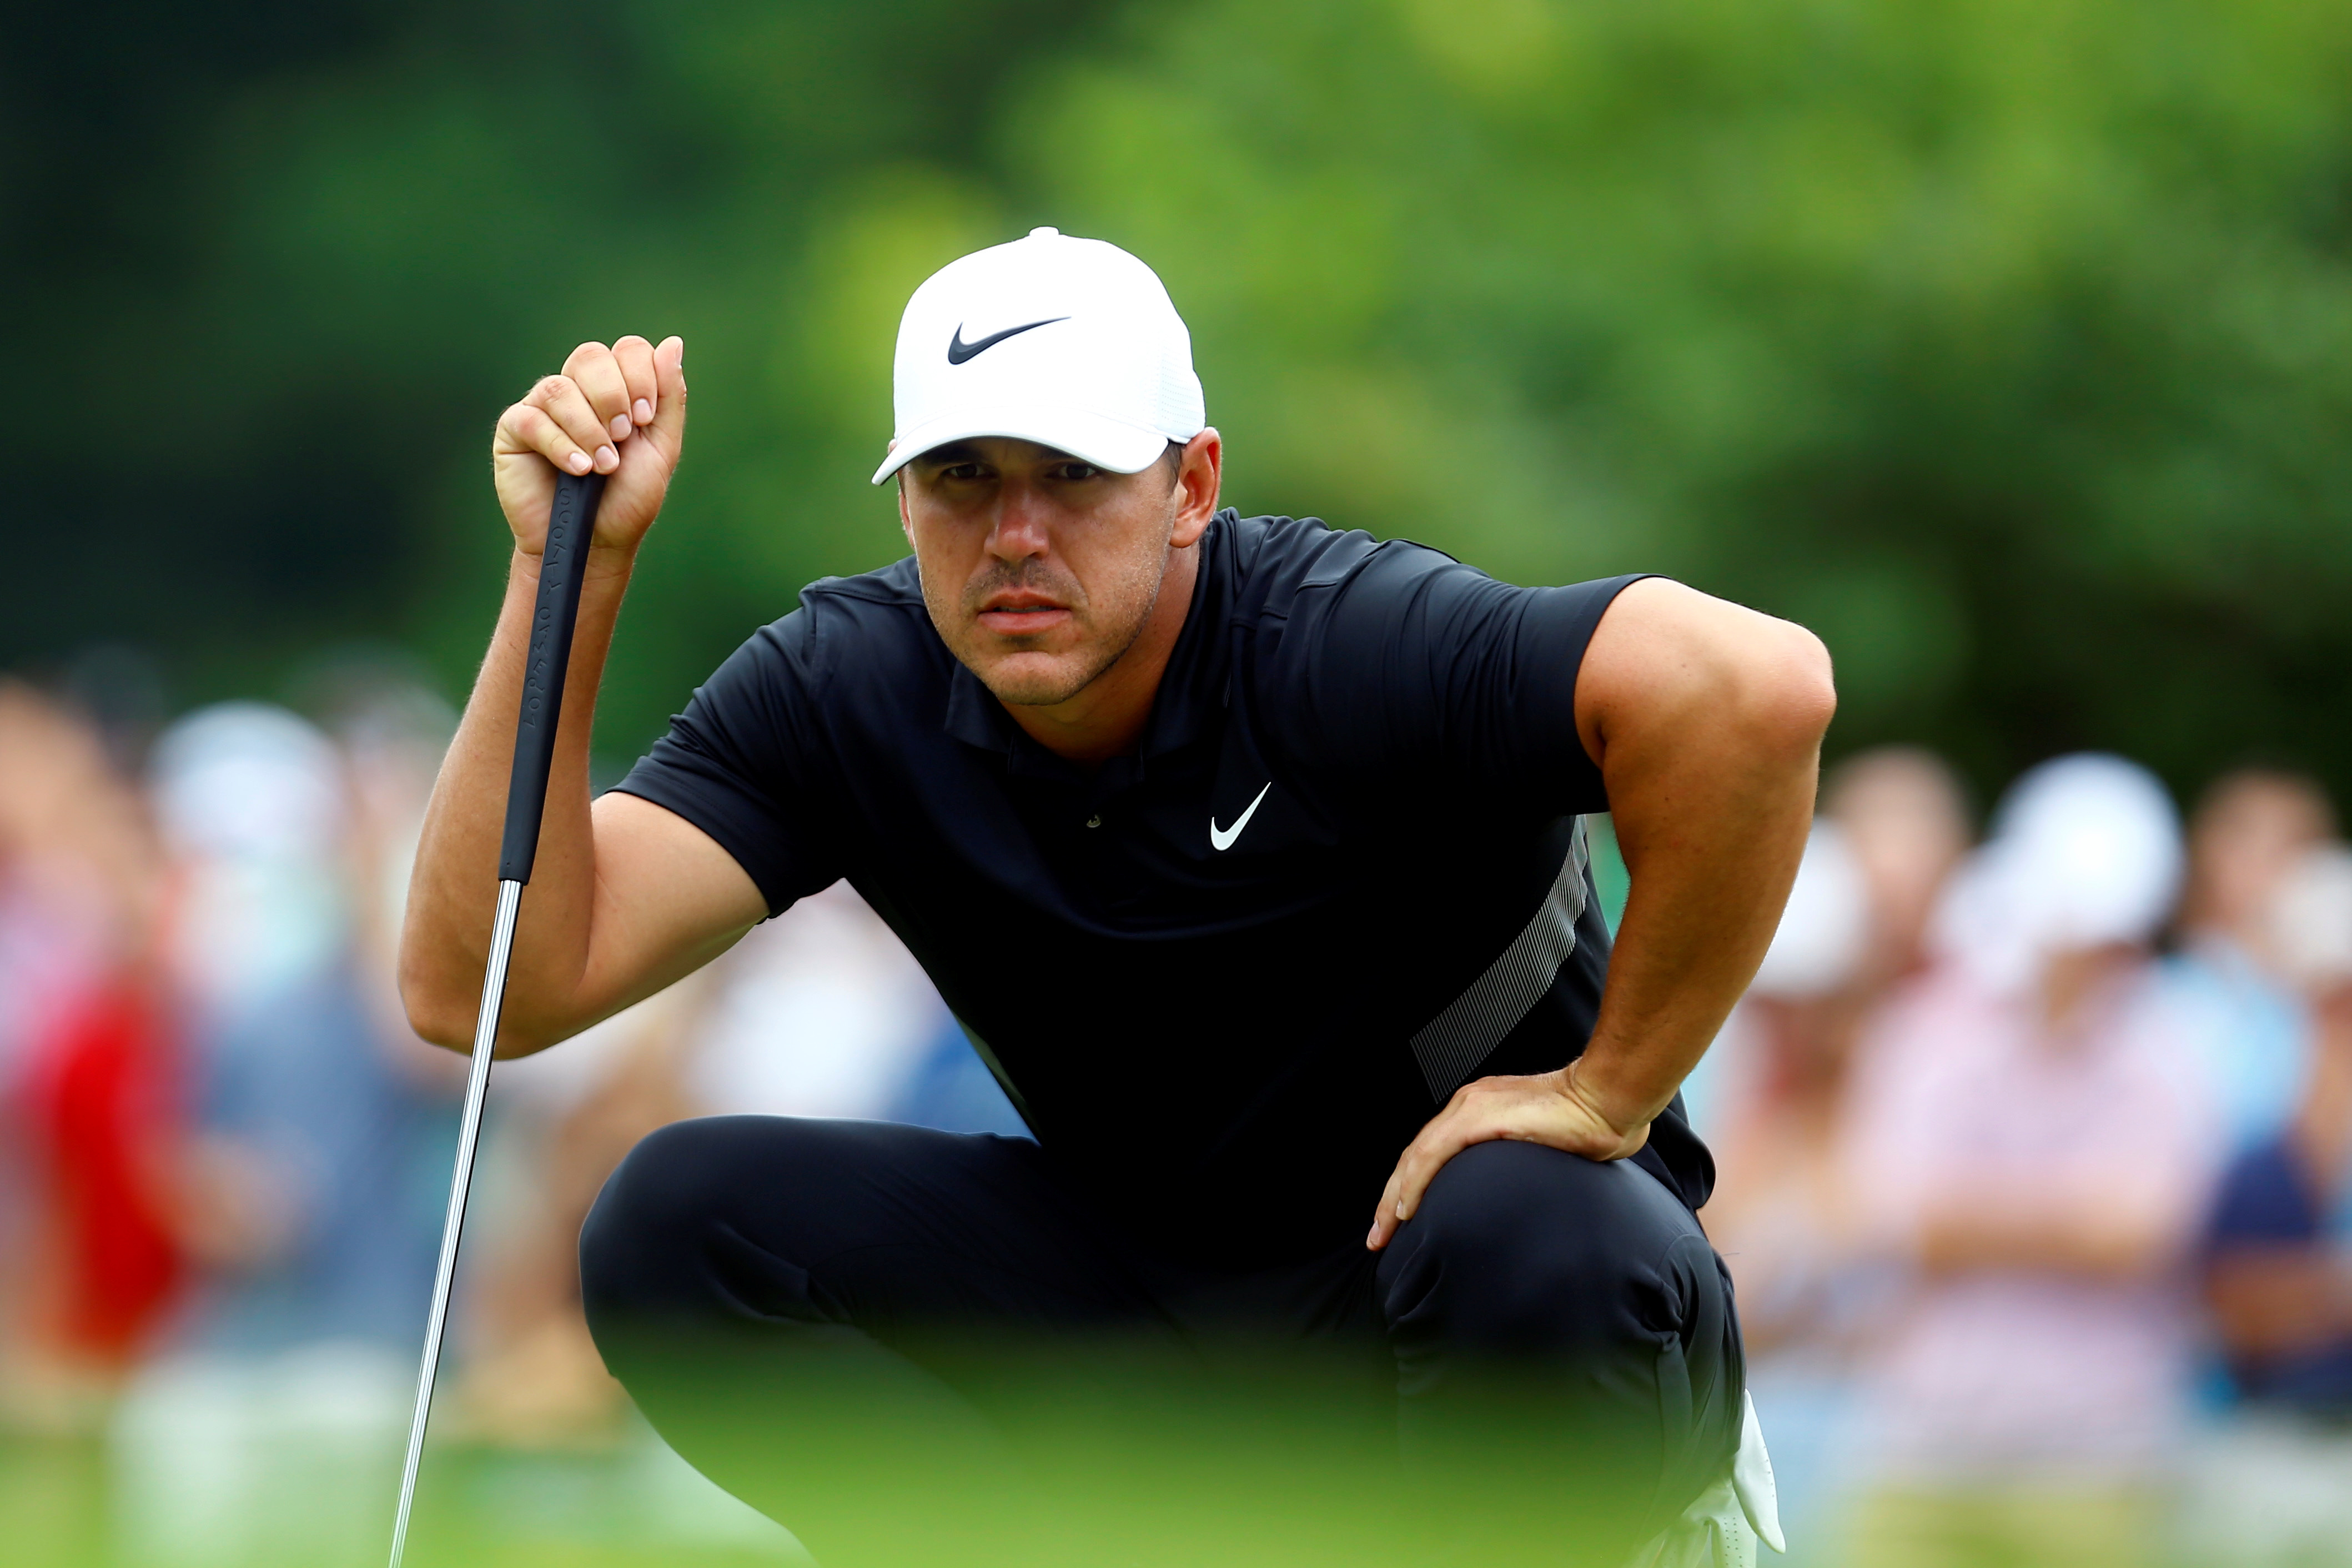 """Brooks Koepka told off for swearing, then replies: """"Well, fine me!"""""""